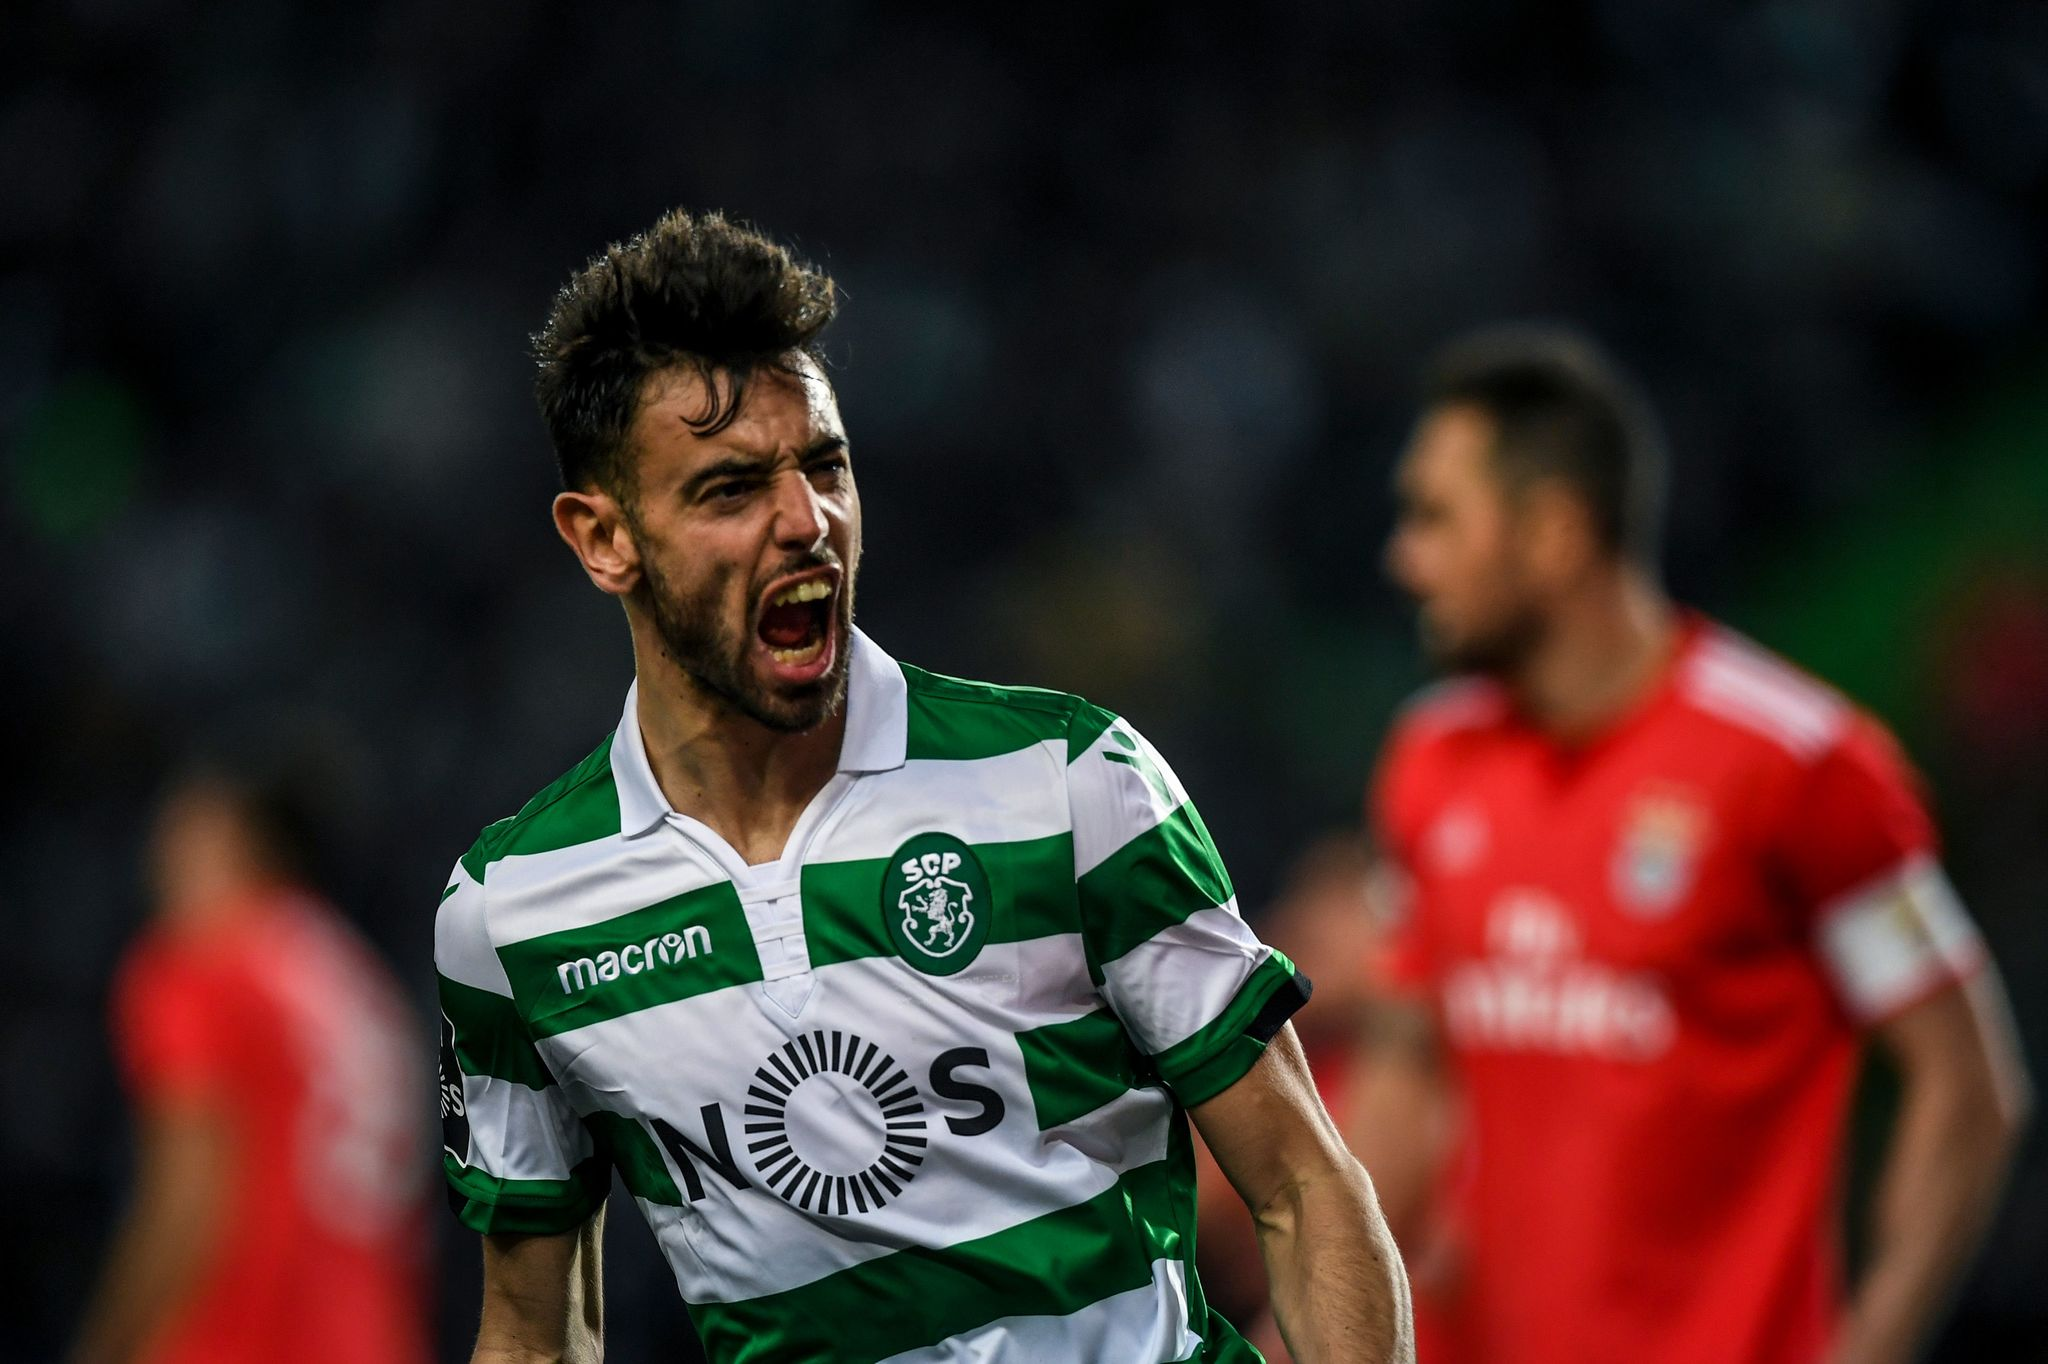 Sportings midfielder <HIT>Bruno</HIT><HIT>Fernandes</HIT> celebrates after scoring during the Portuguese League football match between Sporting CP and SL Benfica at the Jose Alvalade stadium in Lisbon on February 3, 2019. (Photo by PATRICIA DE MELO MOREIRA / AFP)